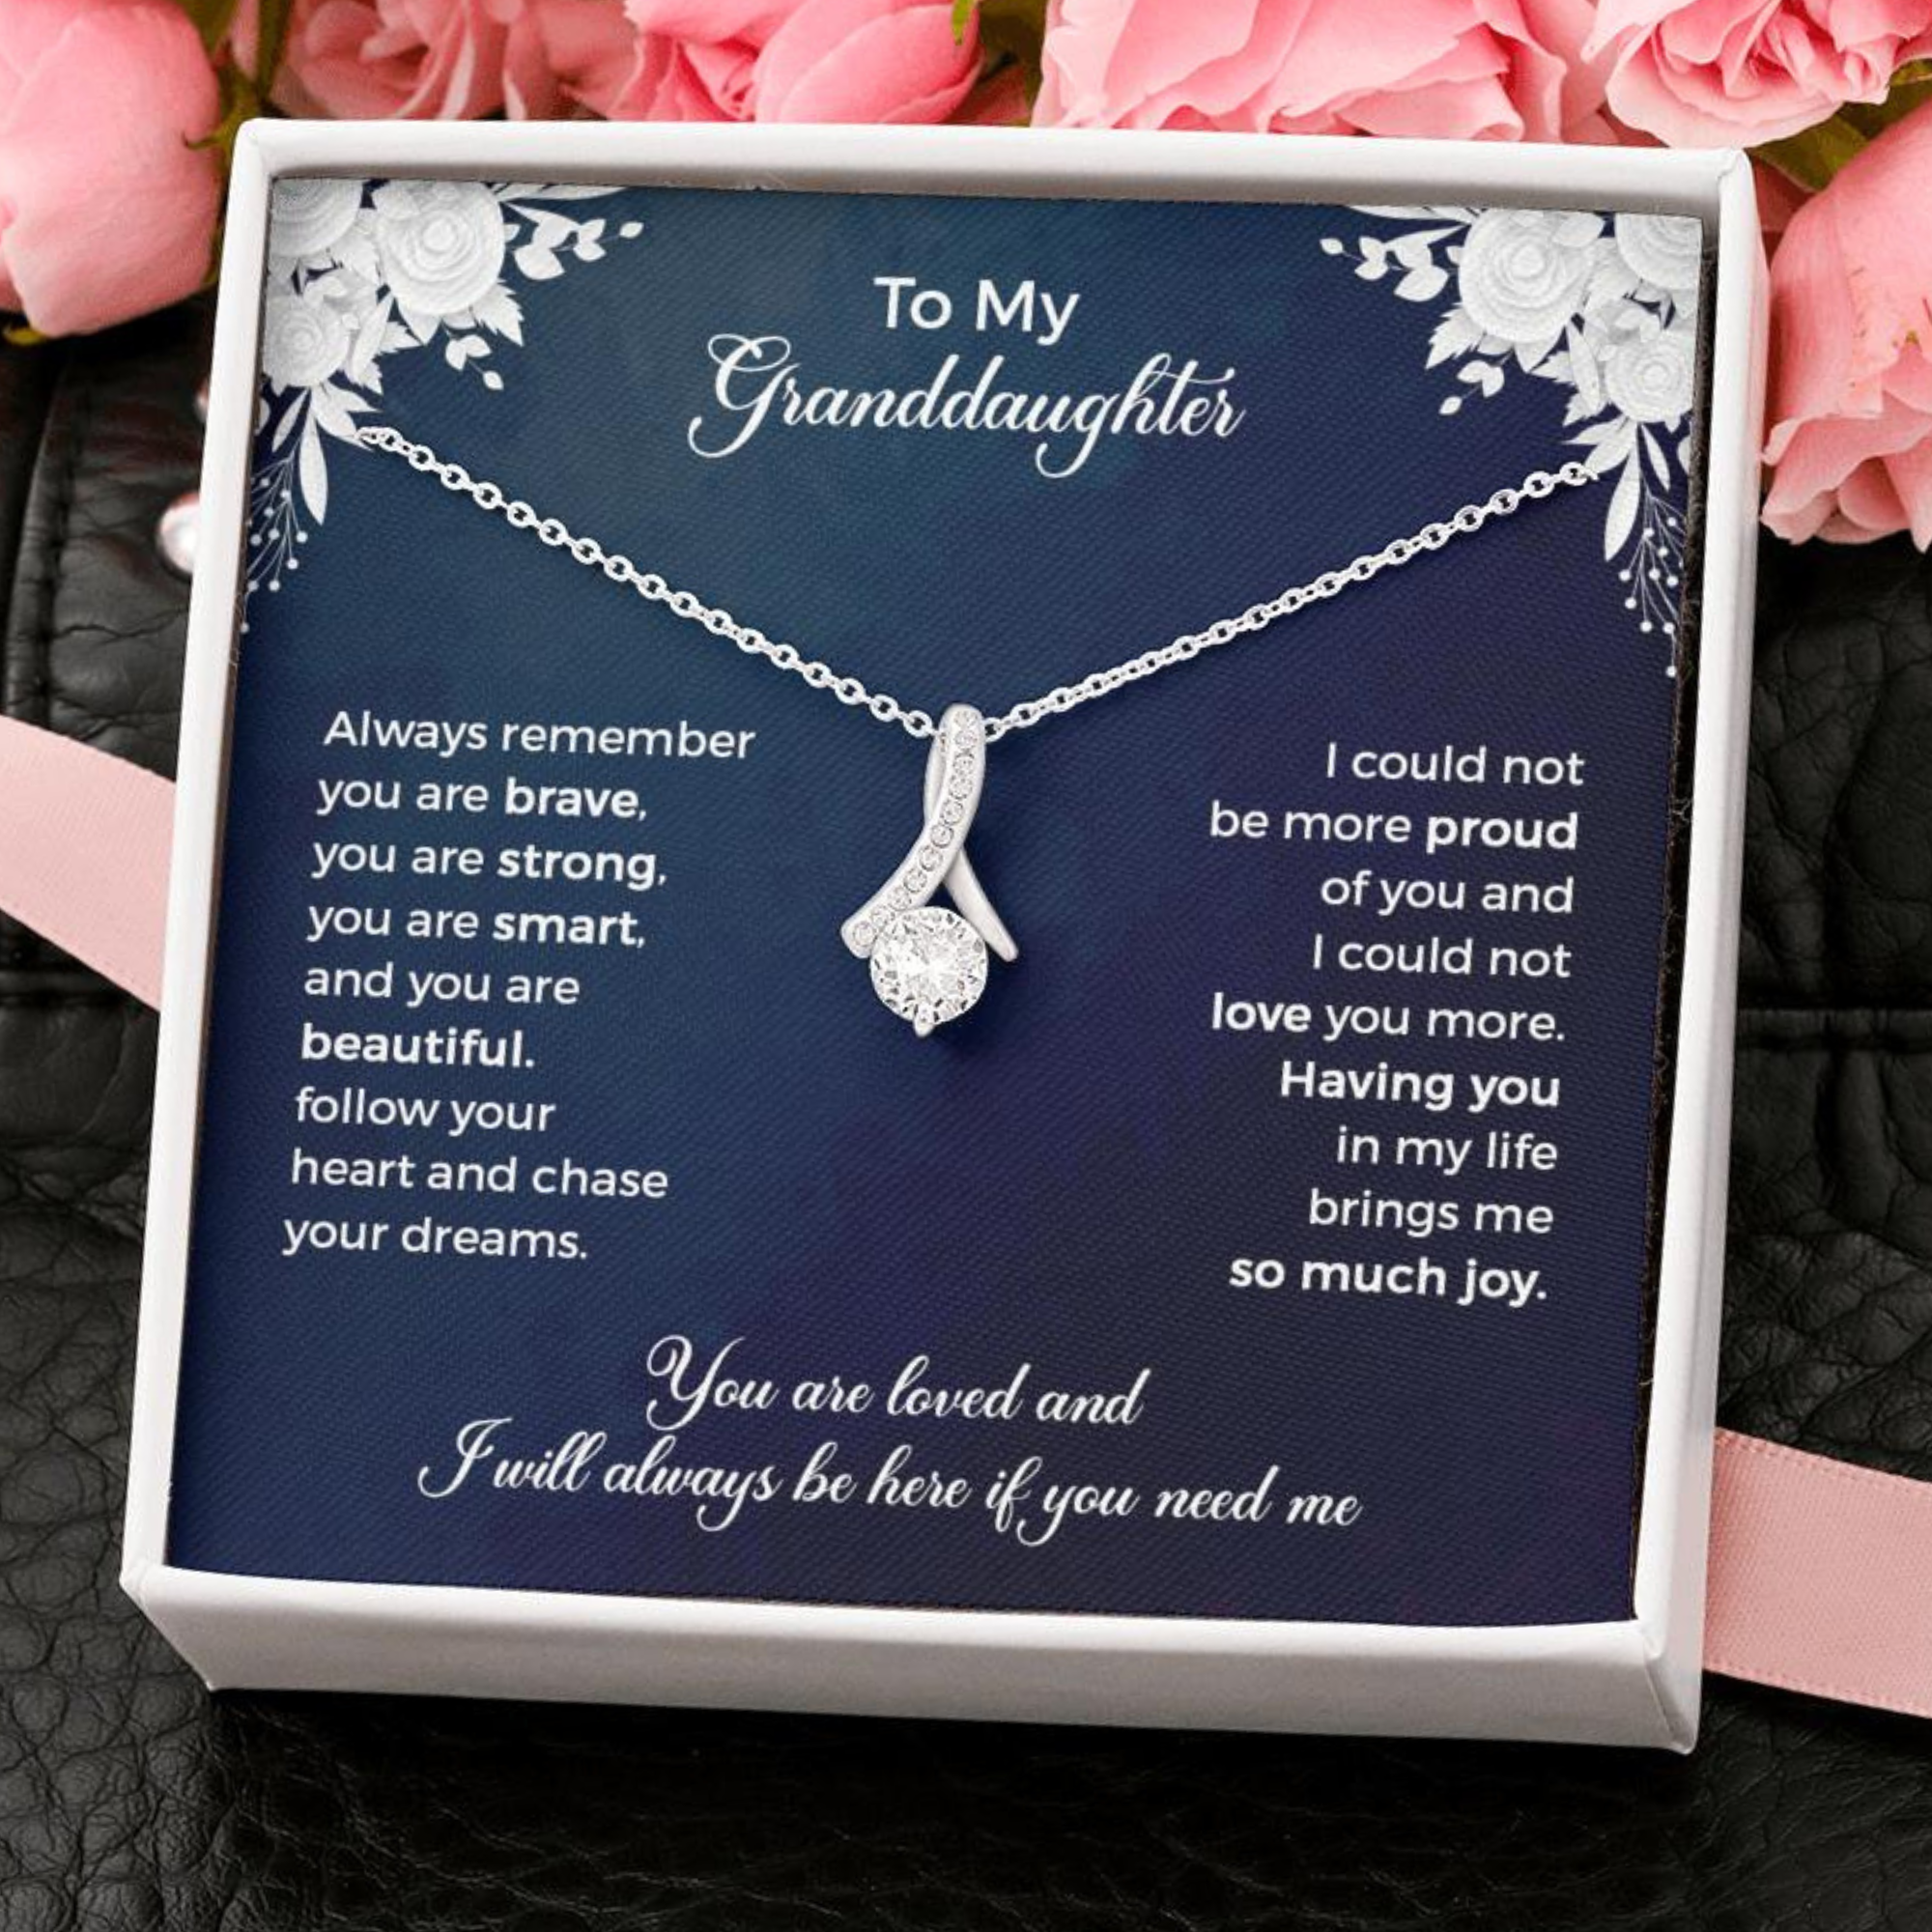 To My Granddaughter - Alluring Beauty Necklace - Brave Strong Smart Beautiful